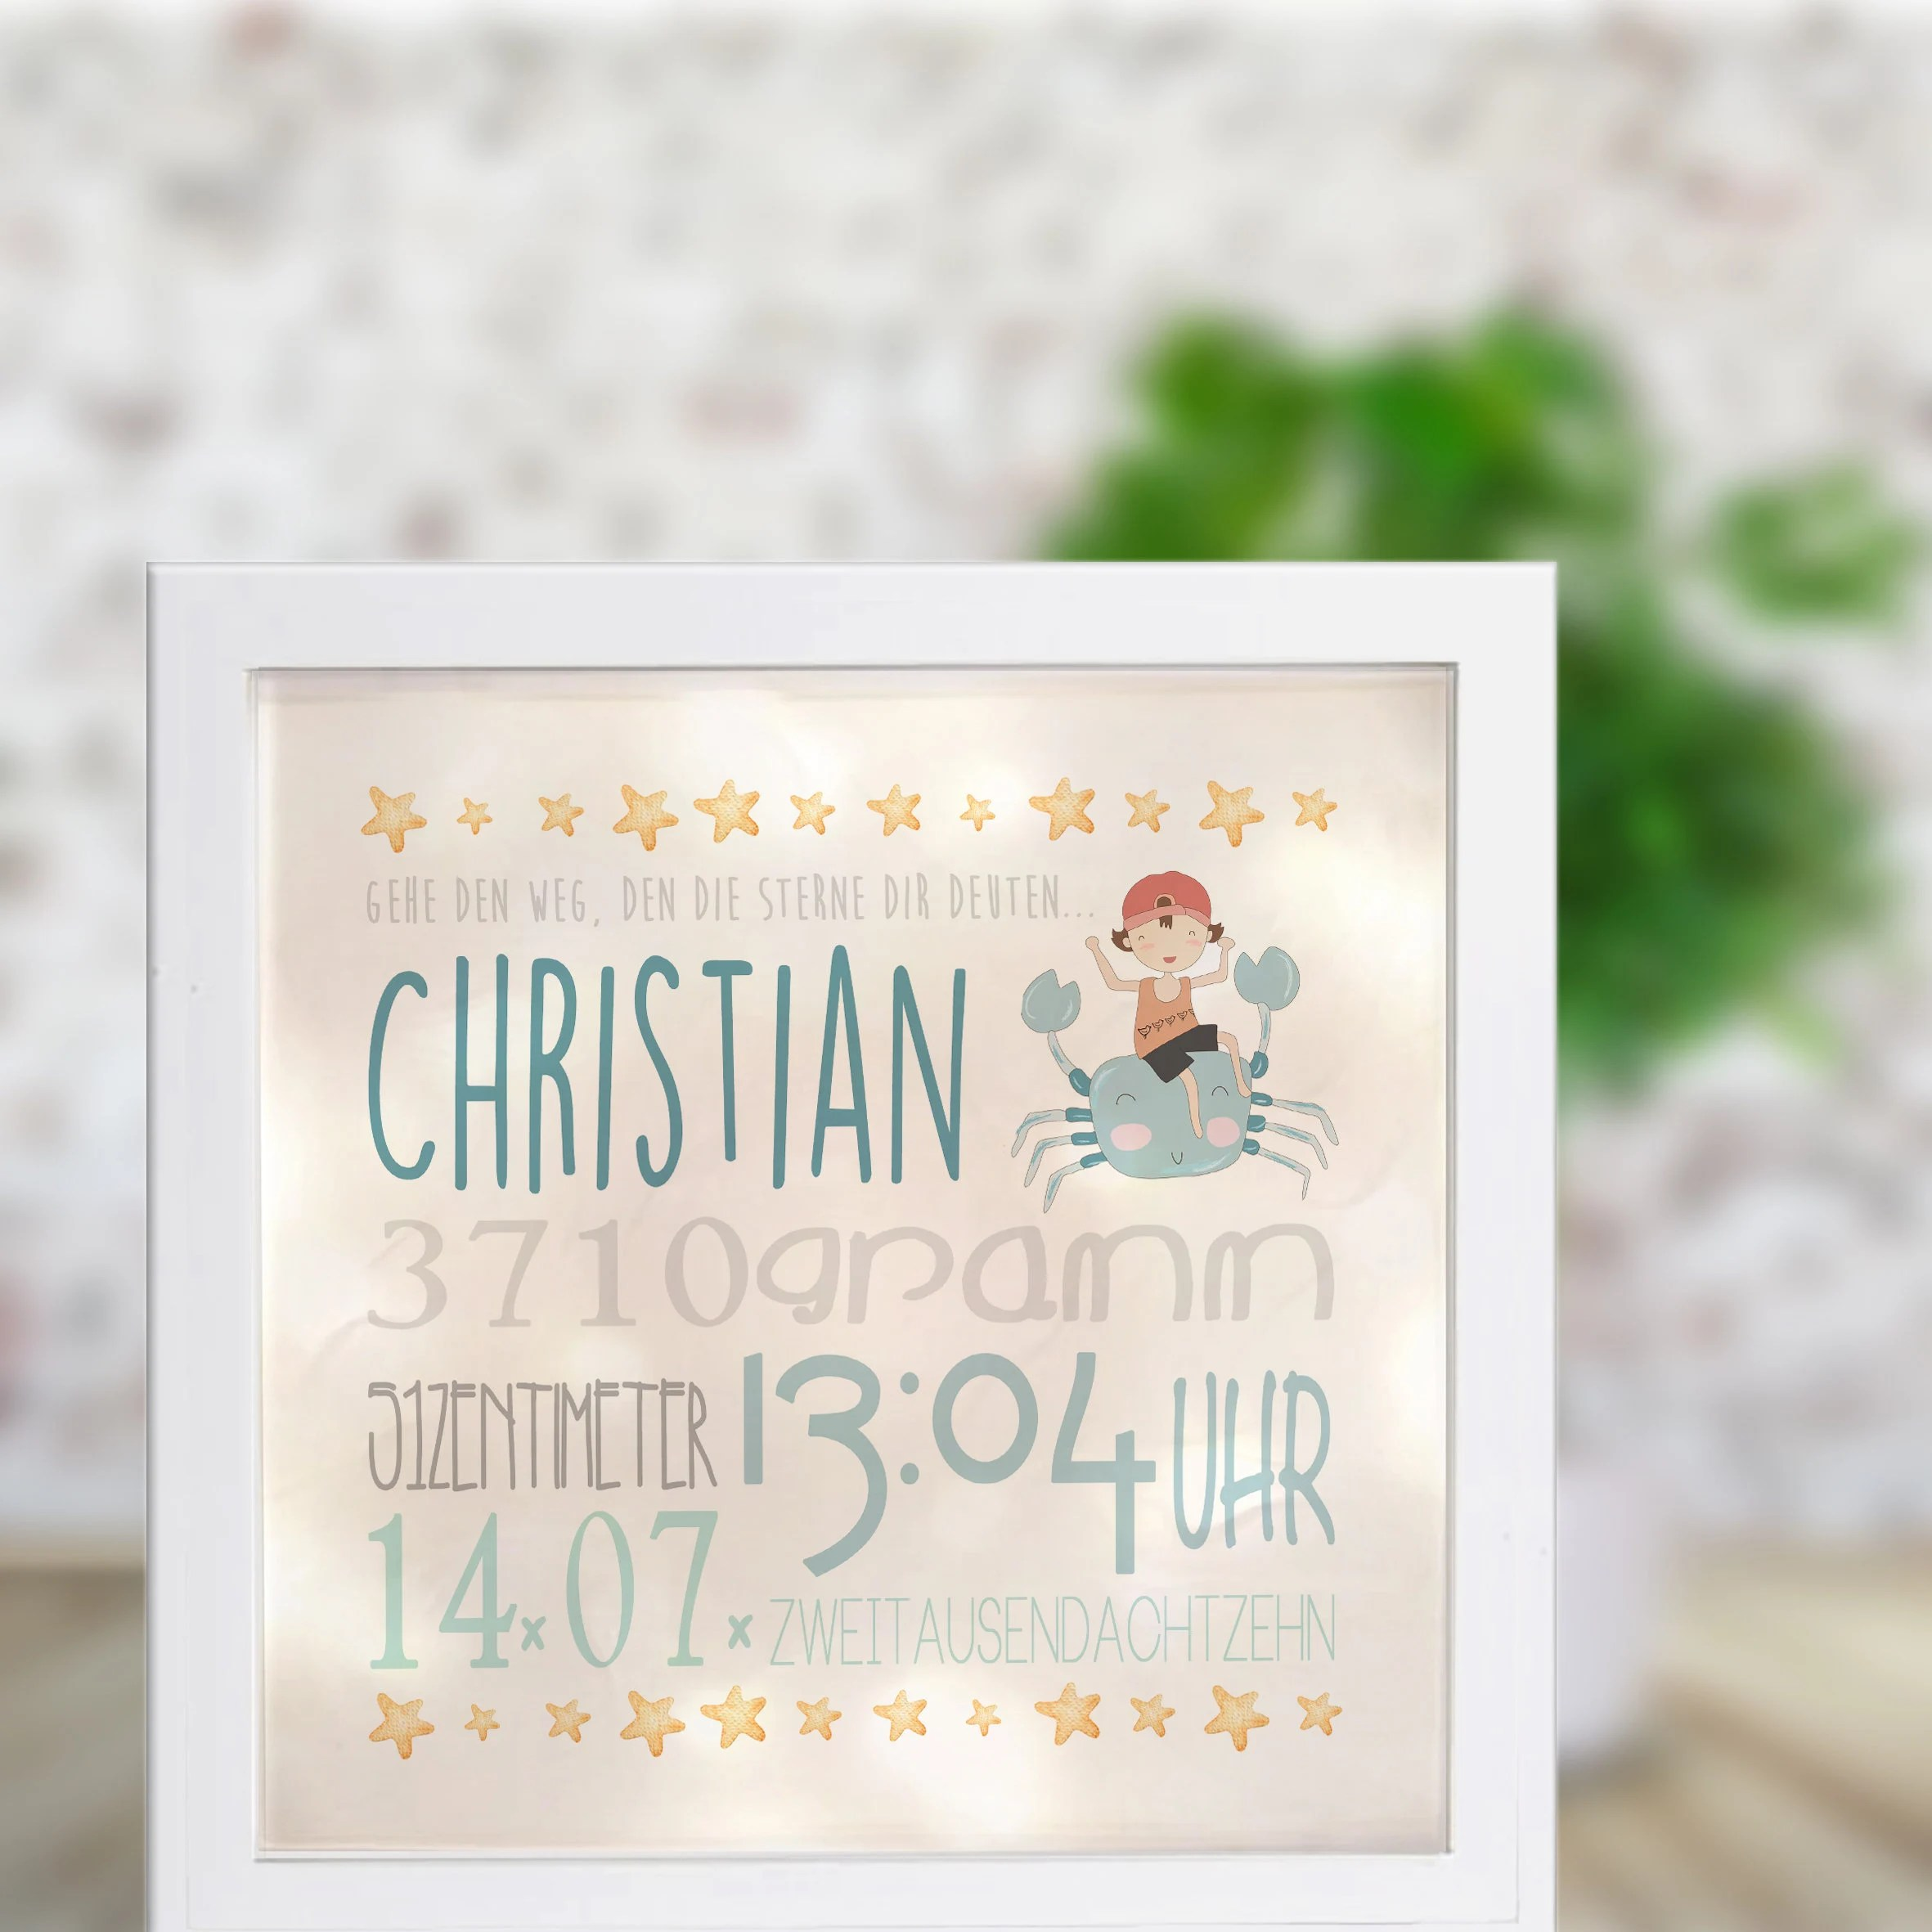 Paspartoe Hema Light Frame Night Light Wall Lighting Christian